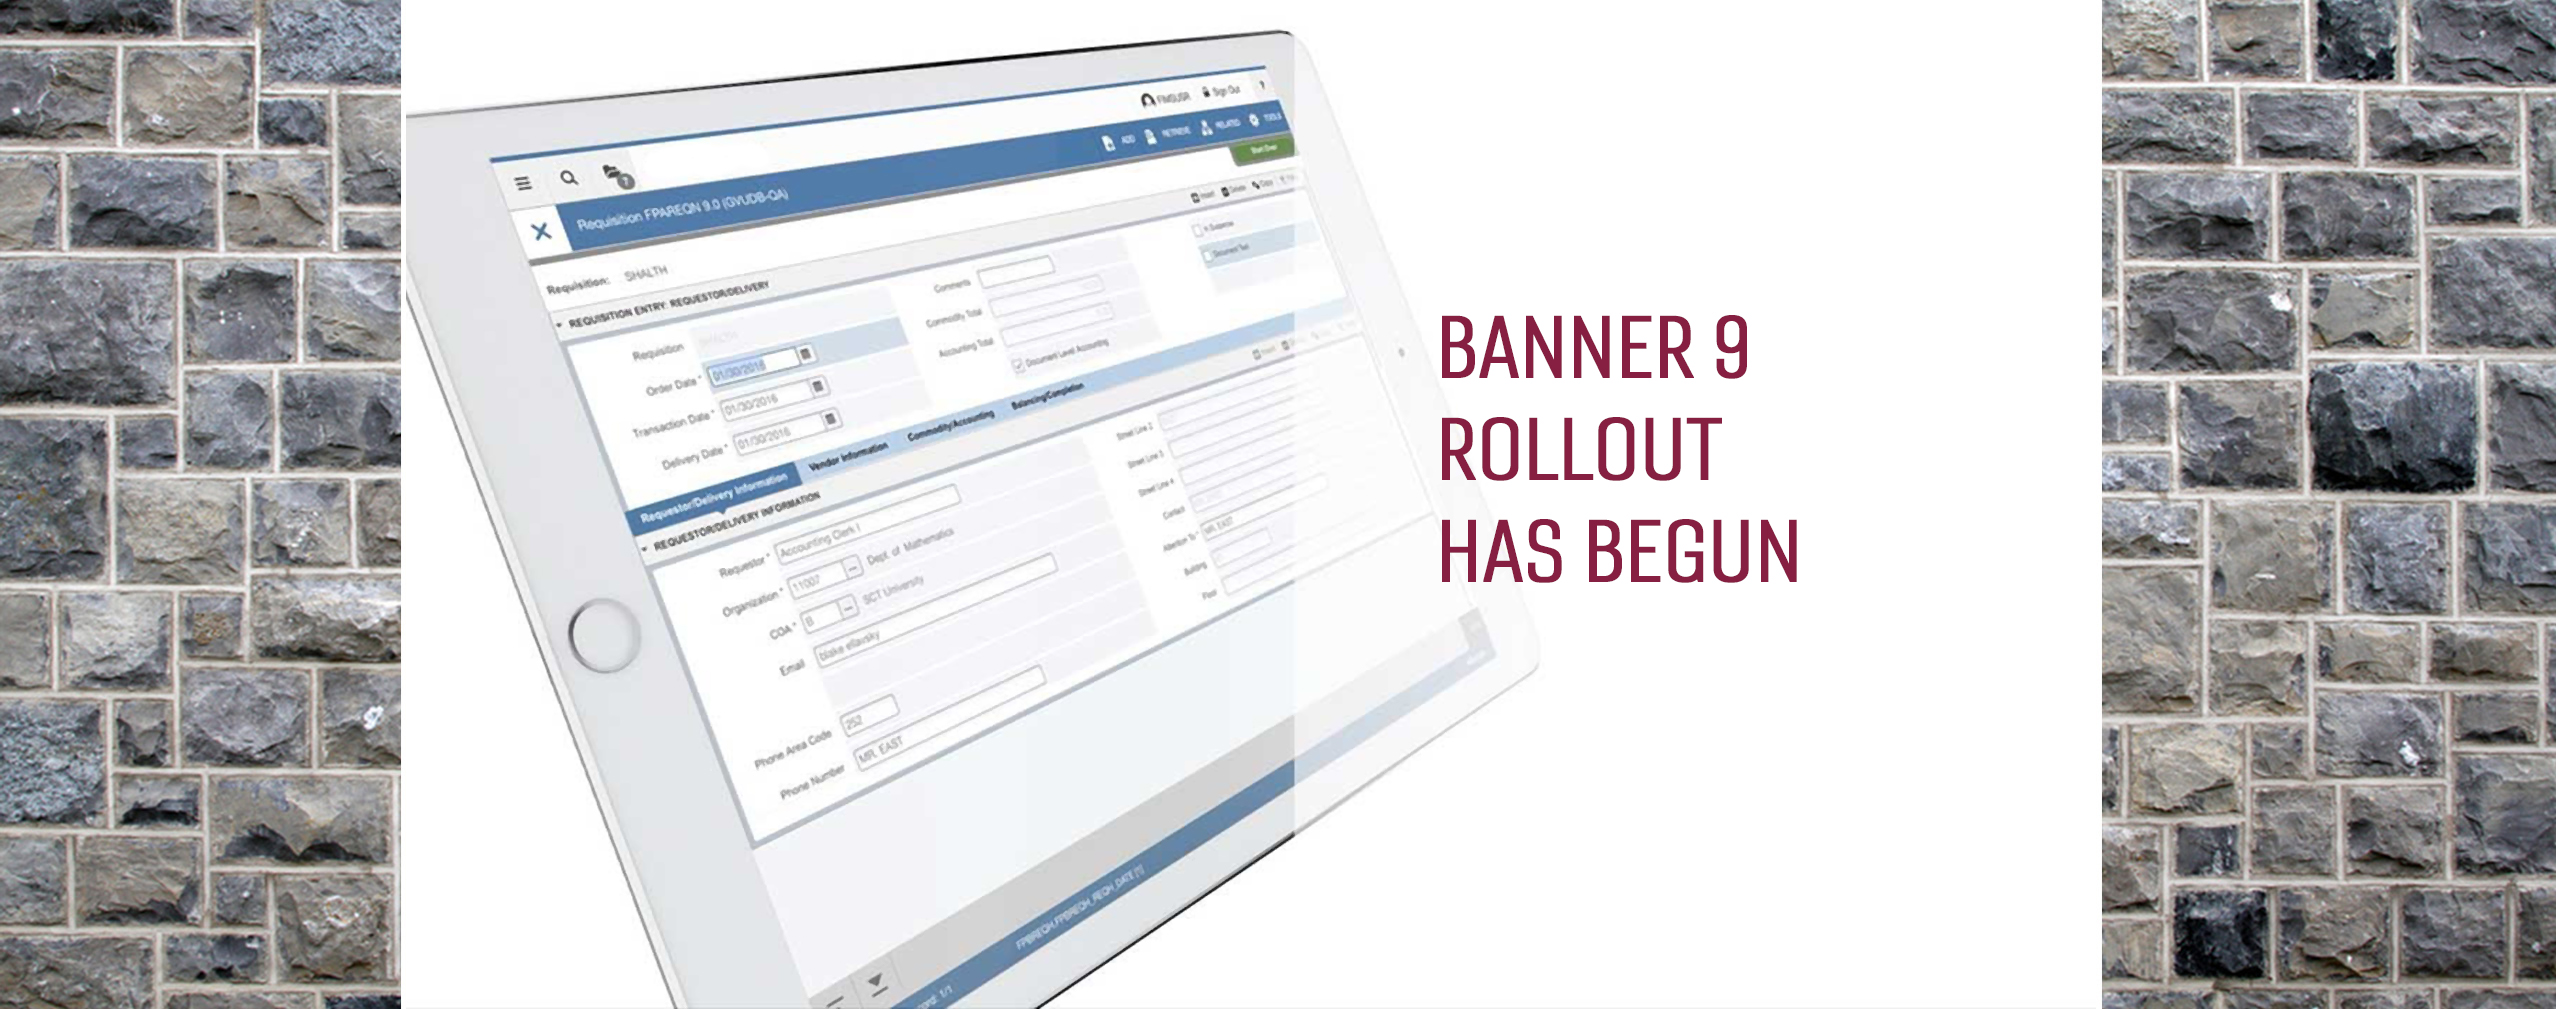 A gradual rollout of Banner 9 has begun in some administrative offices